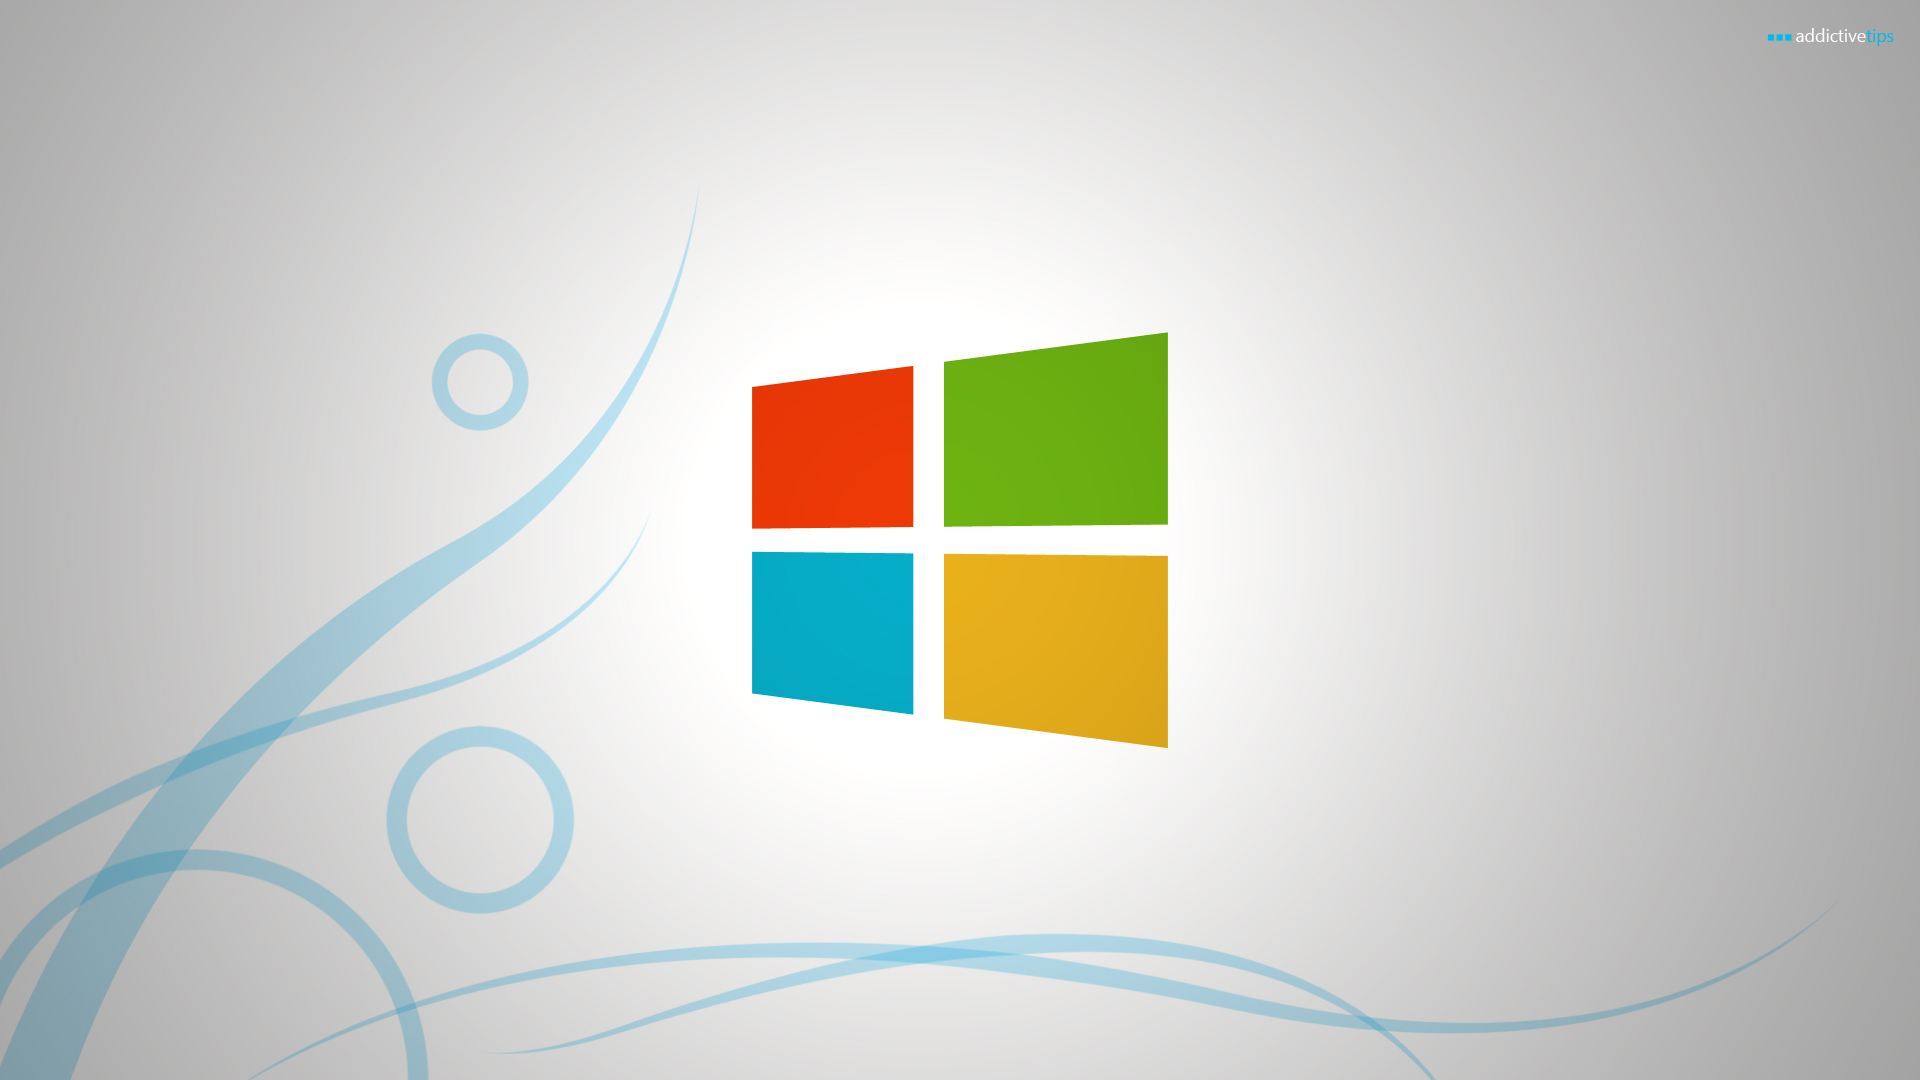 Windows 8 Wallpaper Credits CianDesign 17